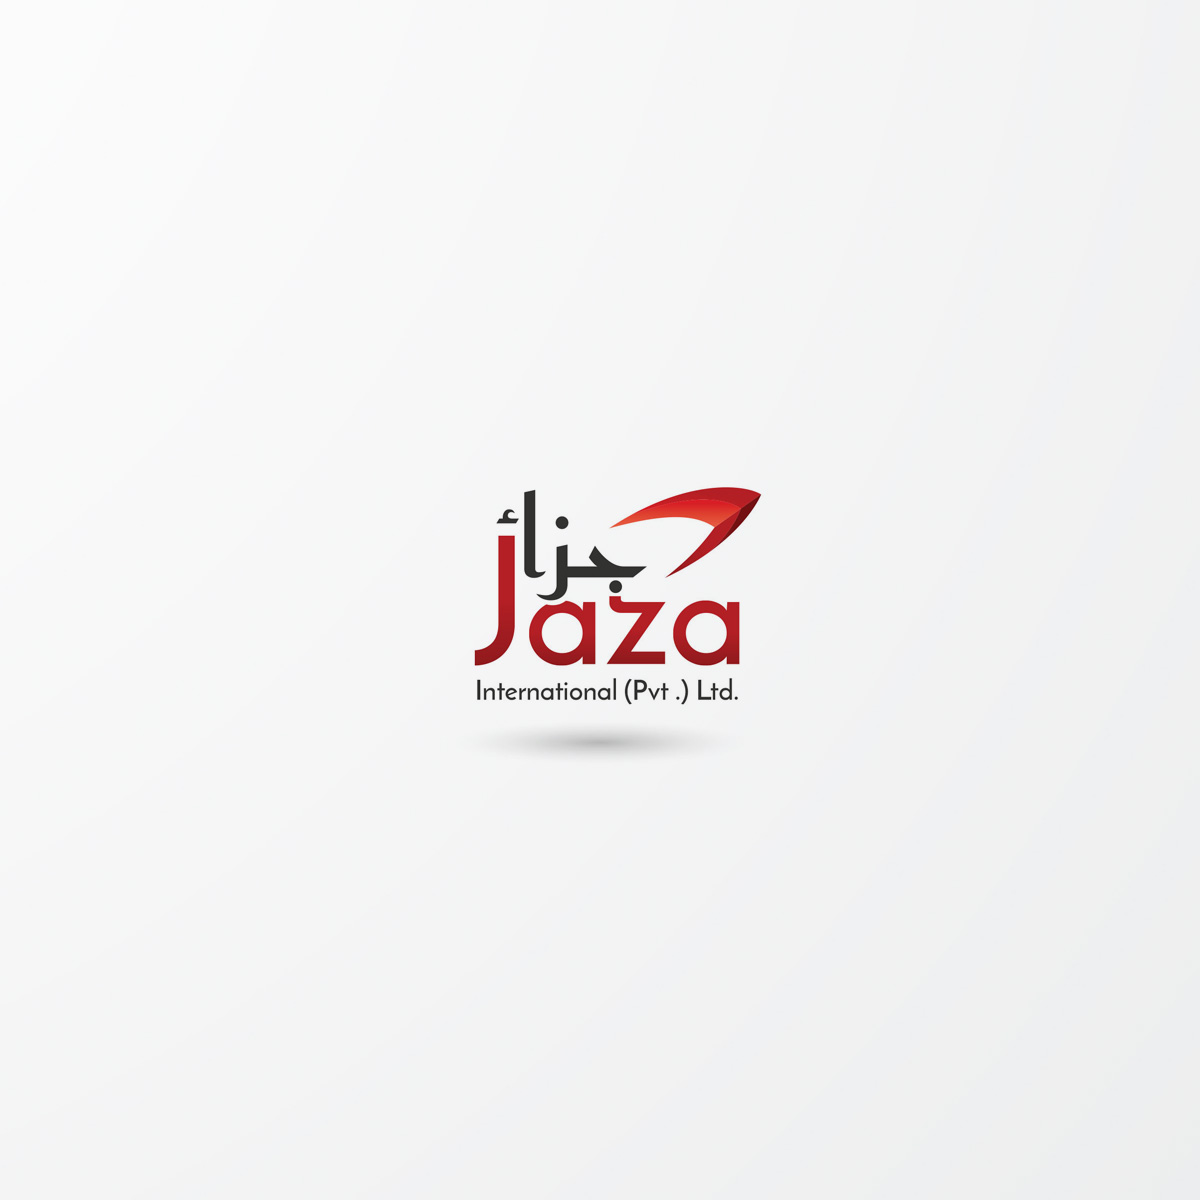 Jaza-International